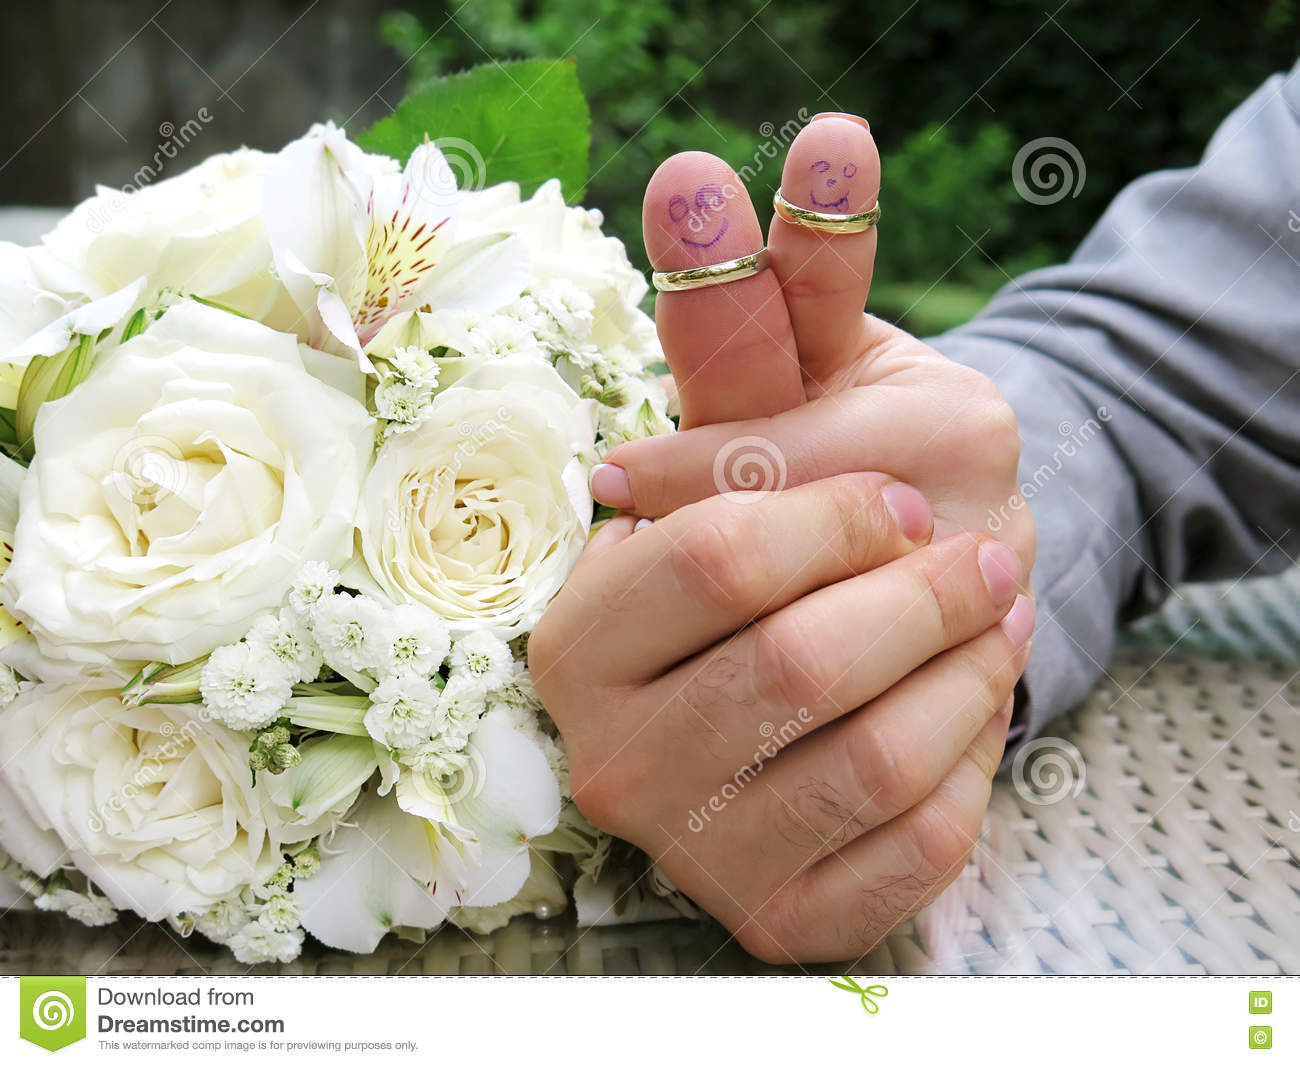 Wedding Rings On Their Fingers People Marrieds Bride And Groom, Painted  Funny Little Men Royalty